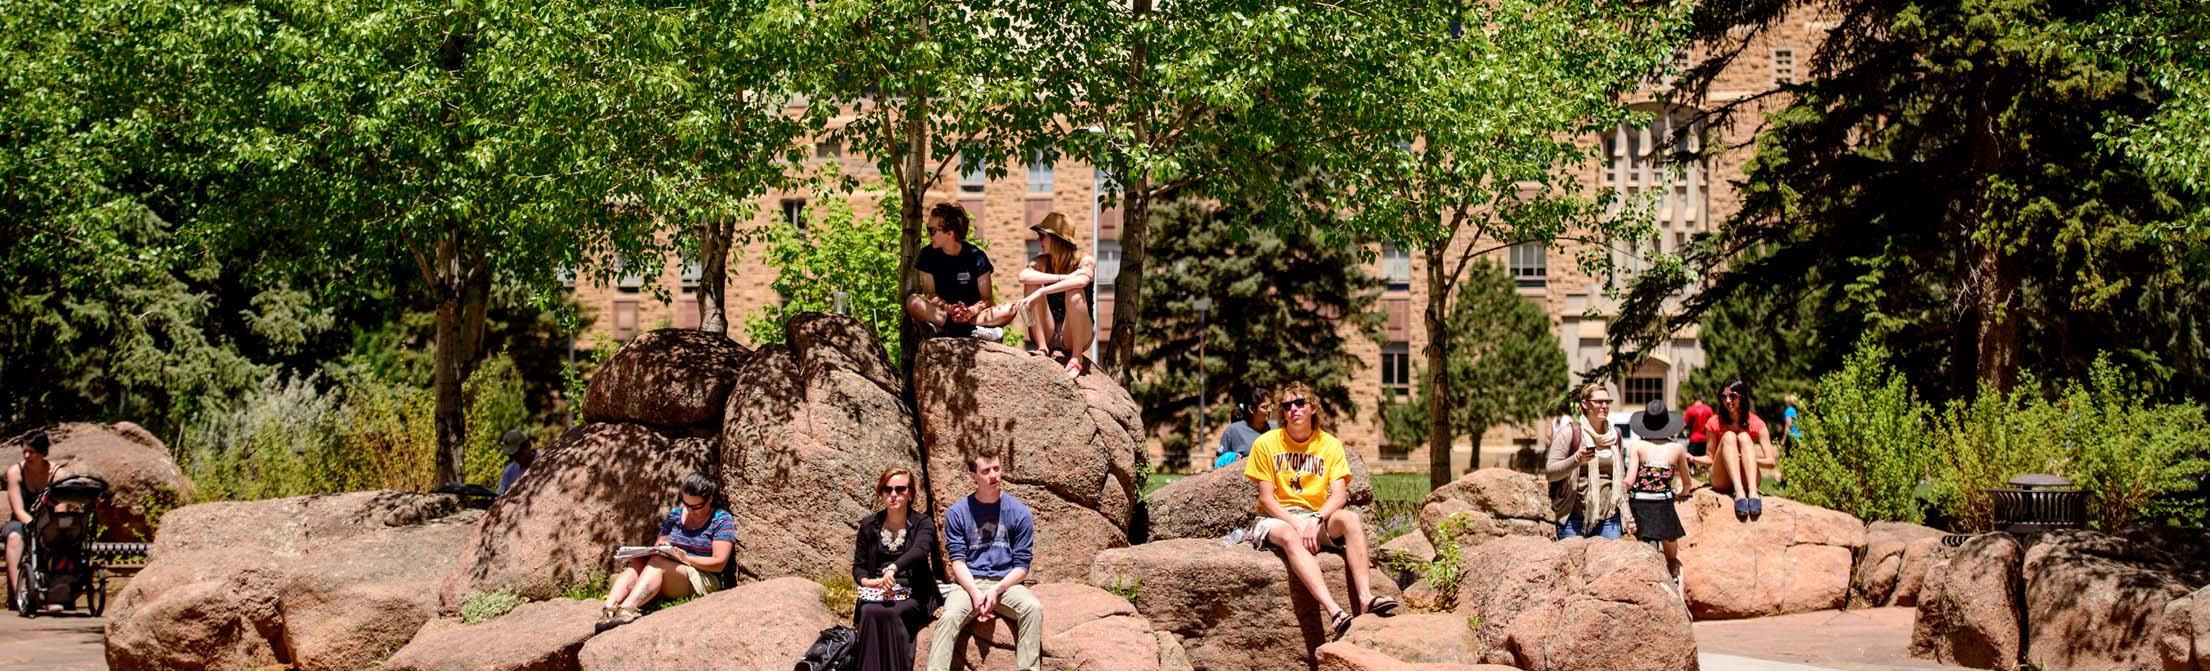 students sitting on rocks on campus